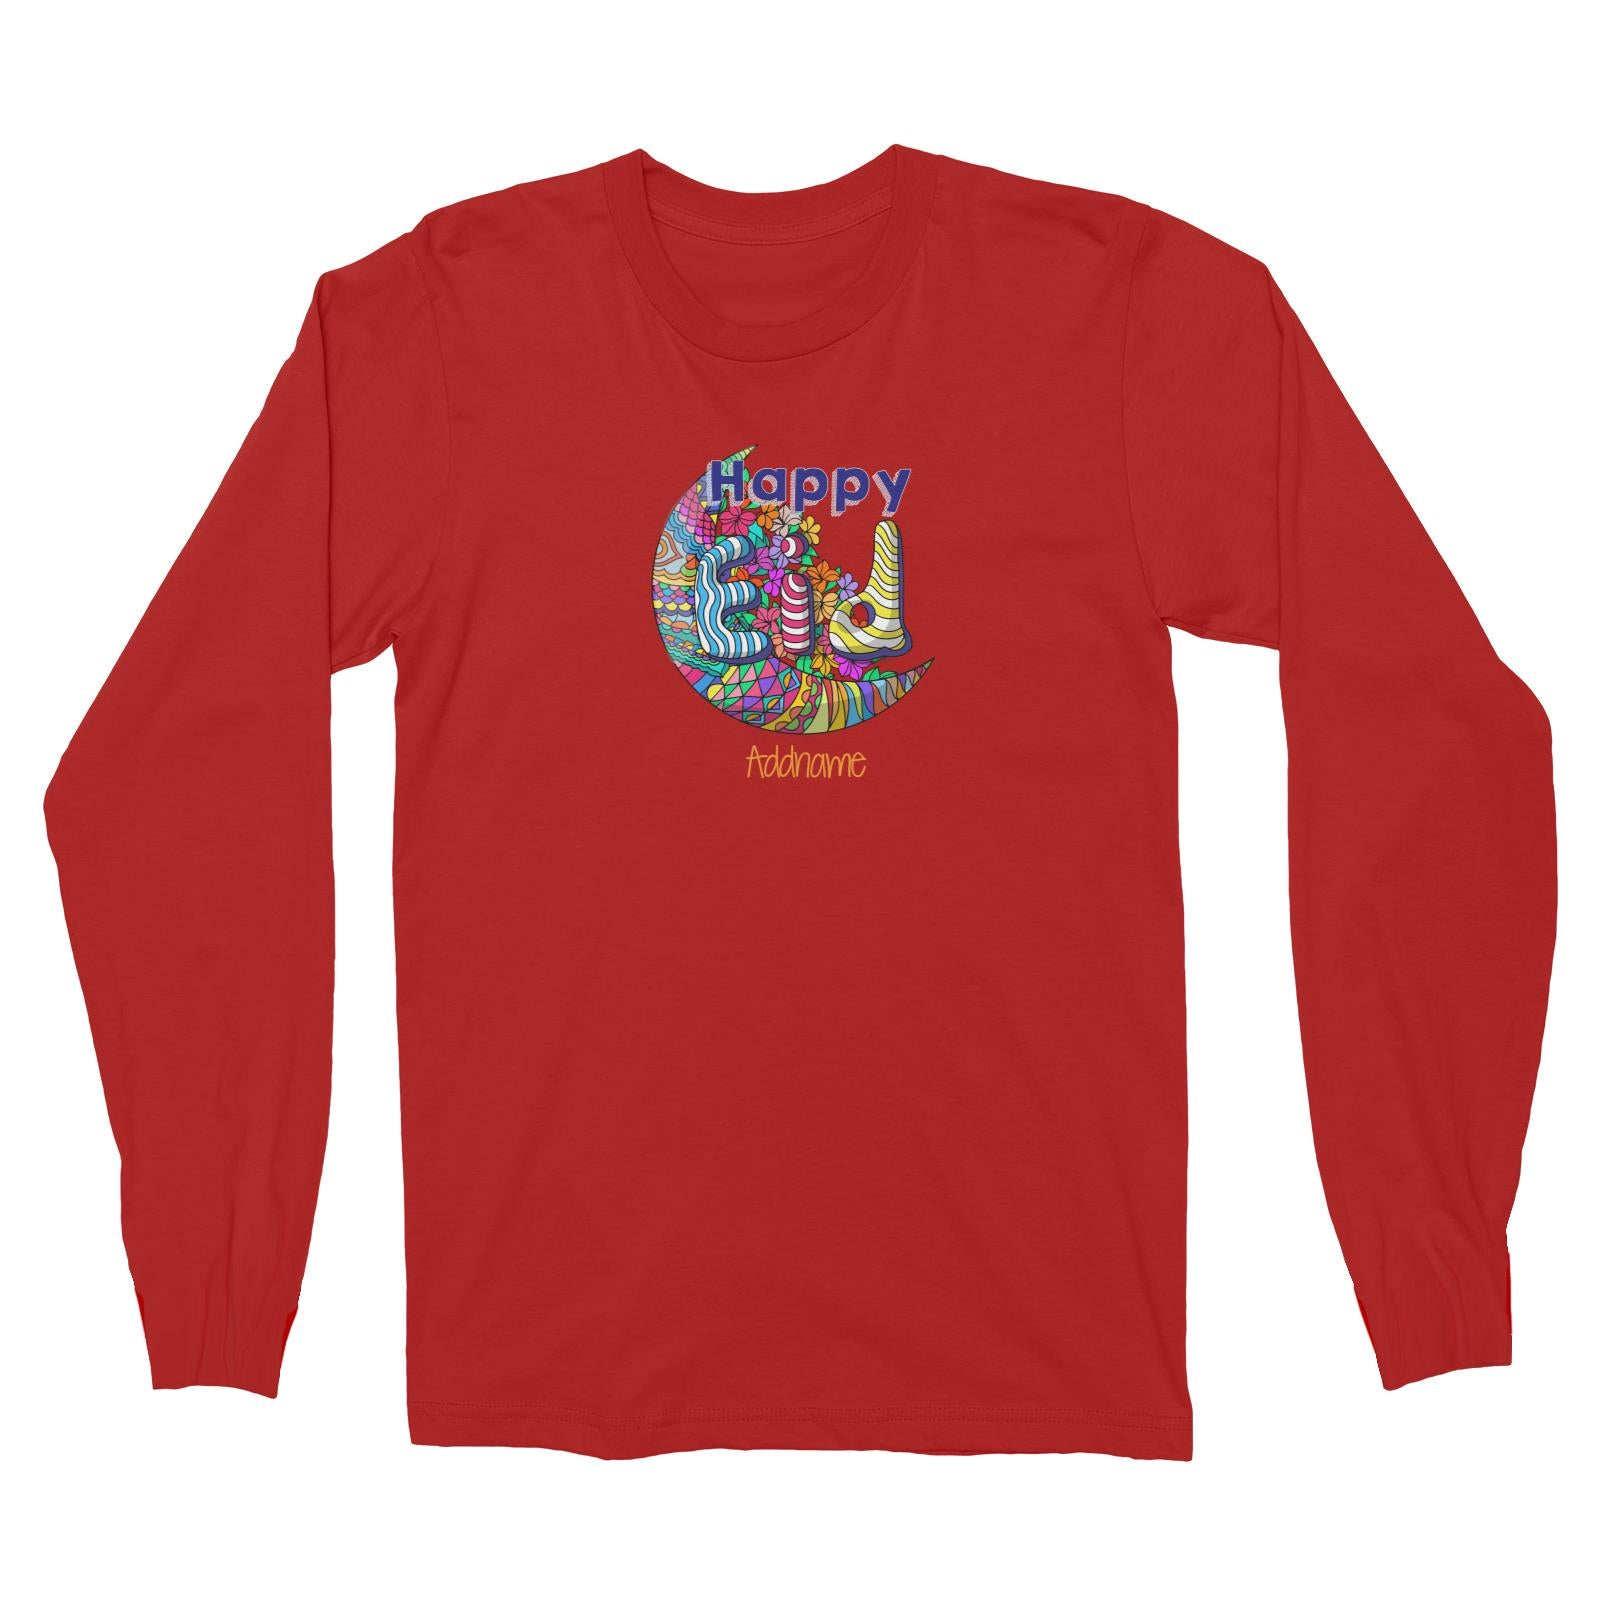 Raya Moon Doodle Moon Happy EID Addname Long Sleeve Unisex T-Shirt